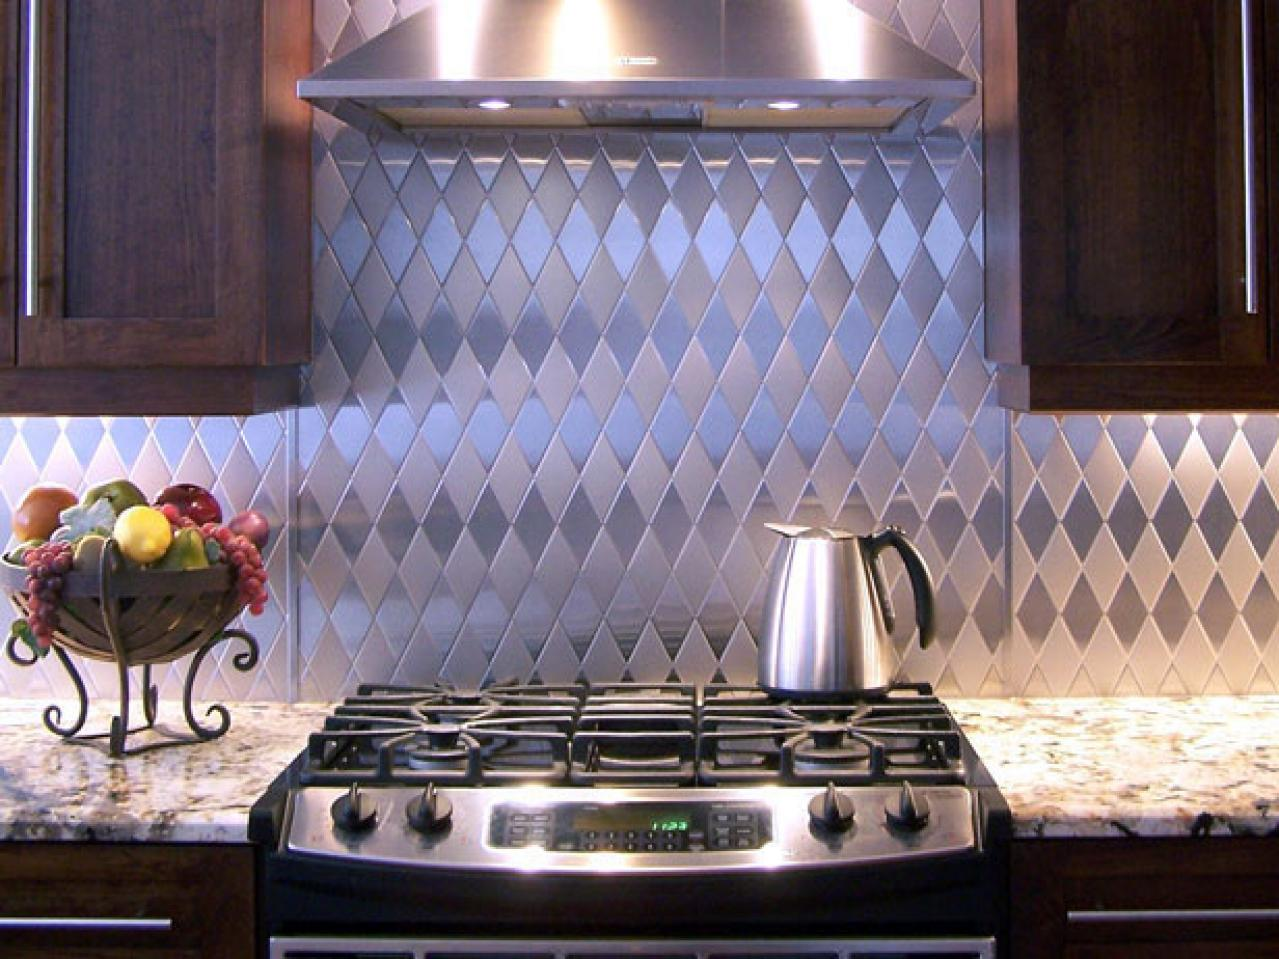 Stainless steel backsplashes hgtv Kitchen self design